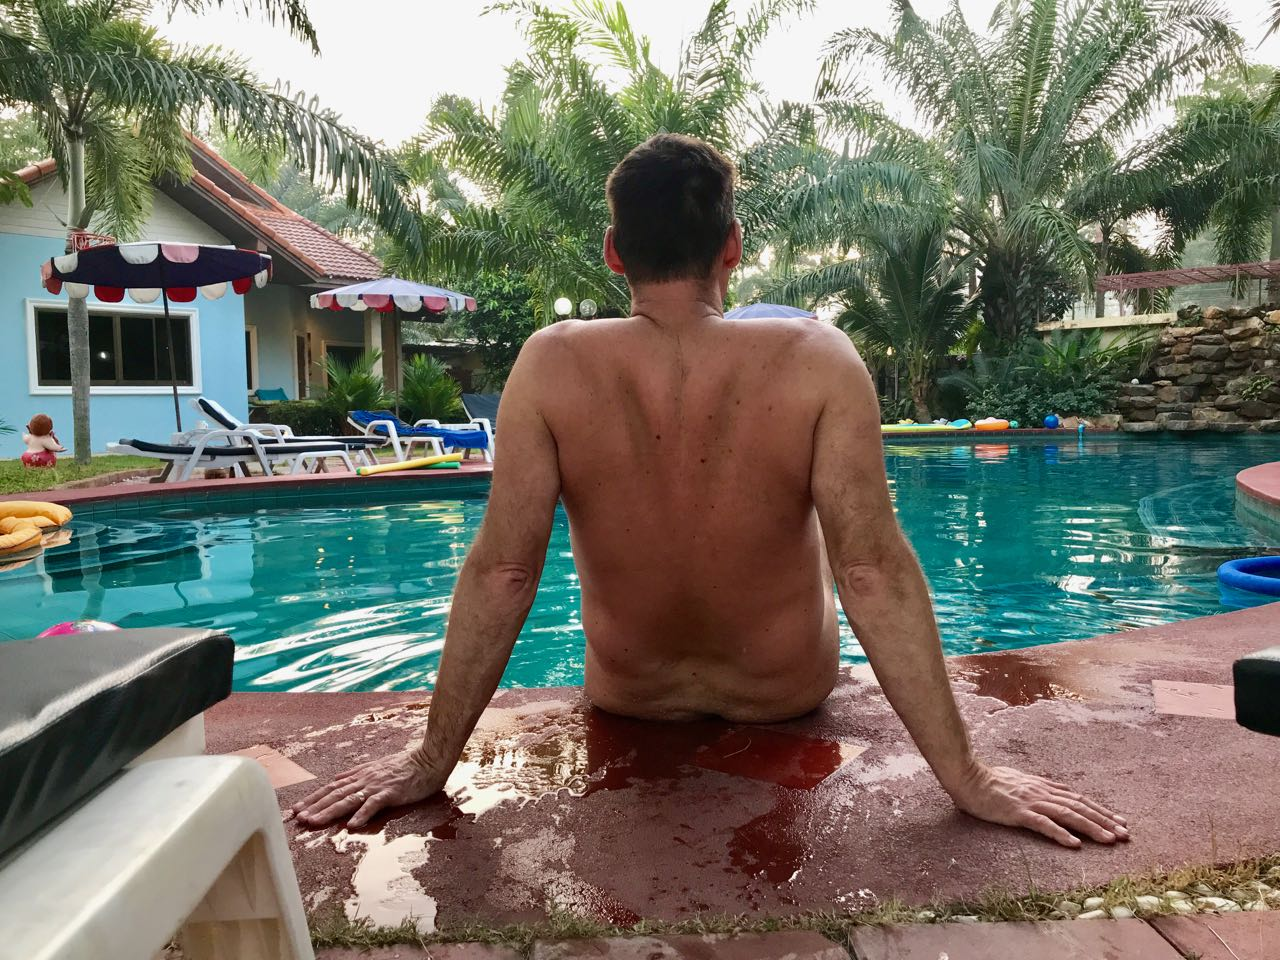 NAKED RESEARCH 2019 – Part II: Naturist Pattaya